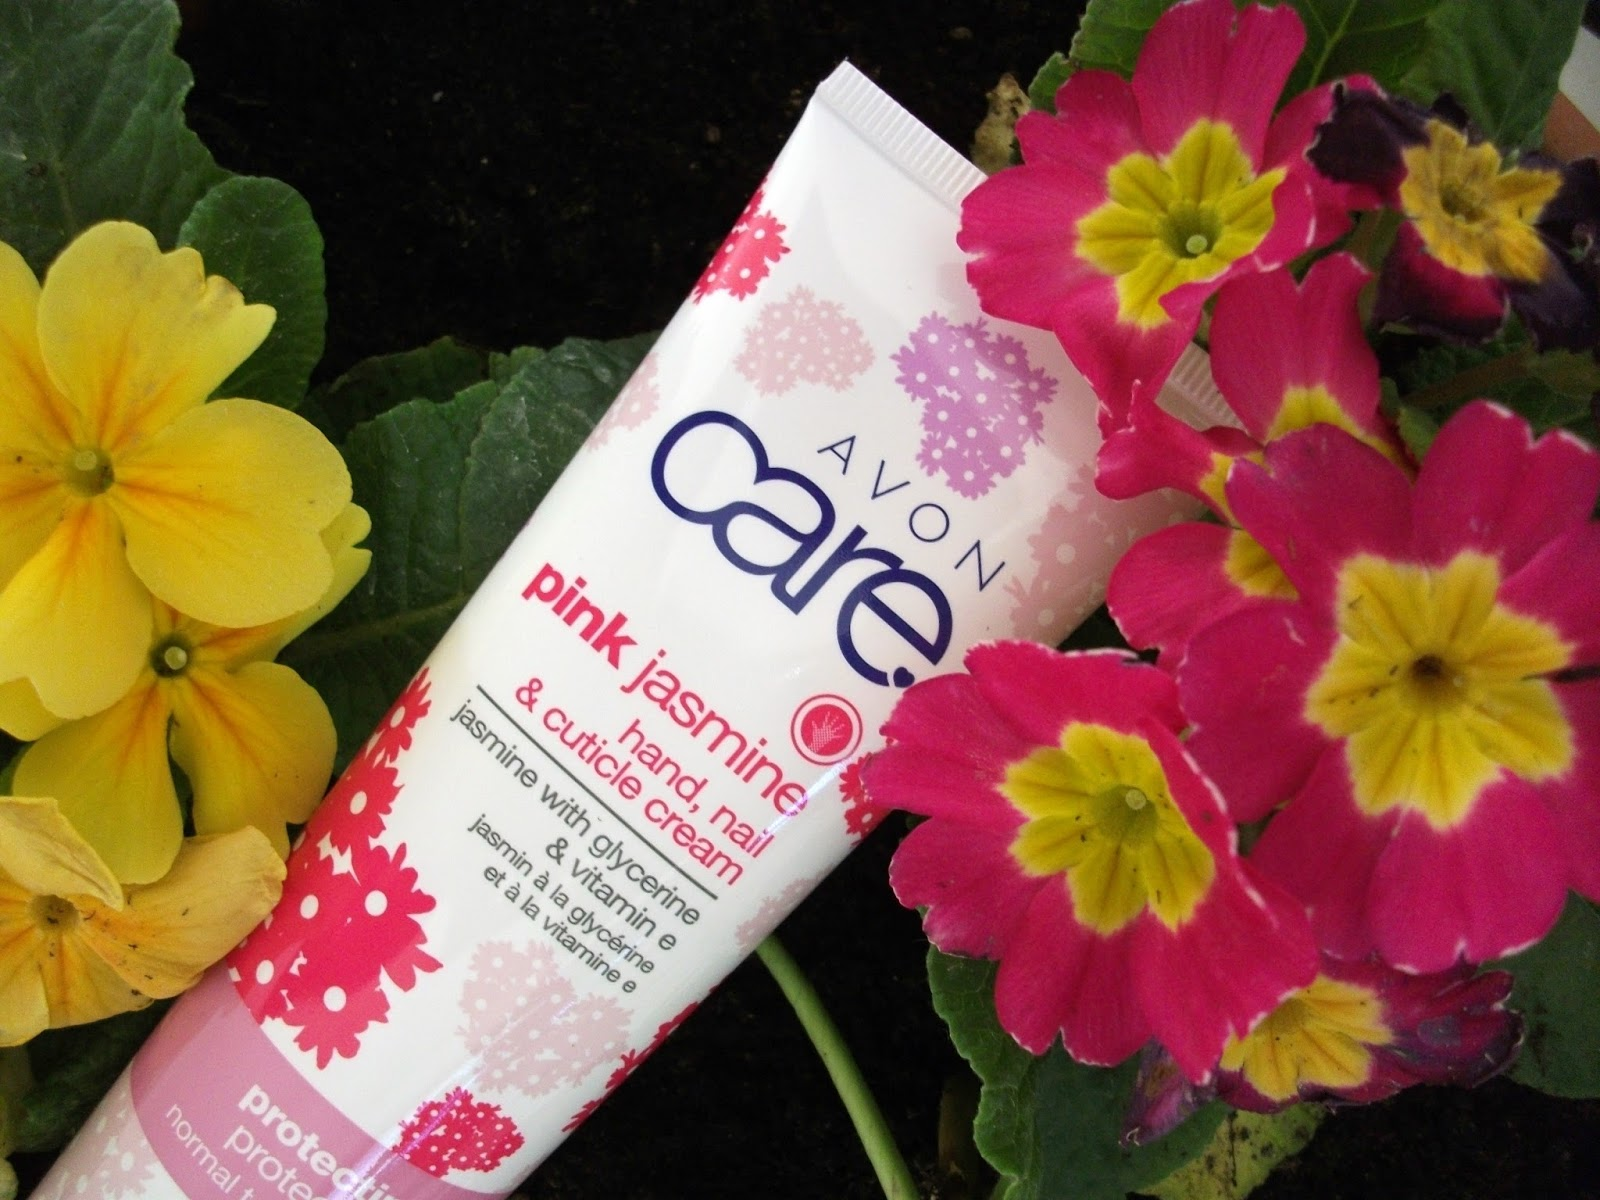 Valens per voi avon avon care pink jasmine hand nail company throughout the day its part of the pink jasmine special edition avon care line along with a shimmering body lotion and a hydrating lip balm izmirmasajfo